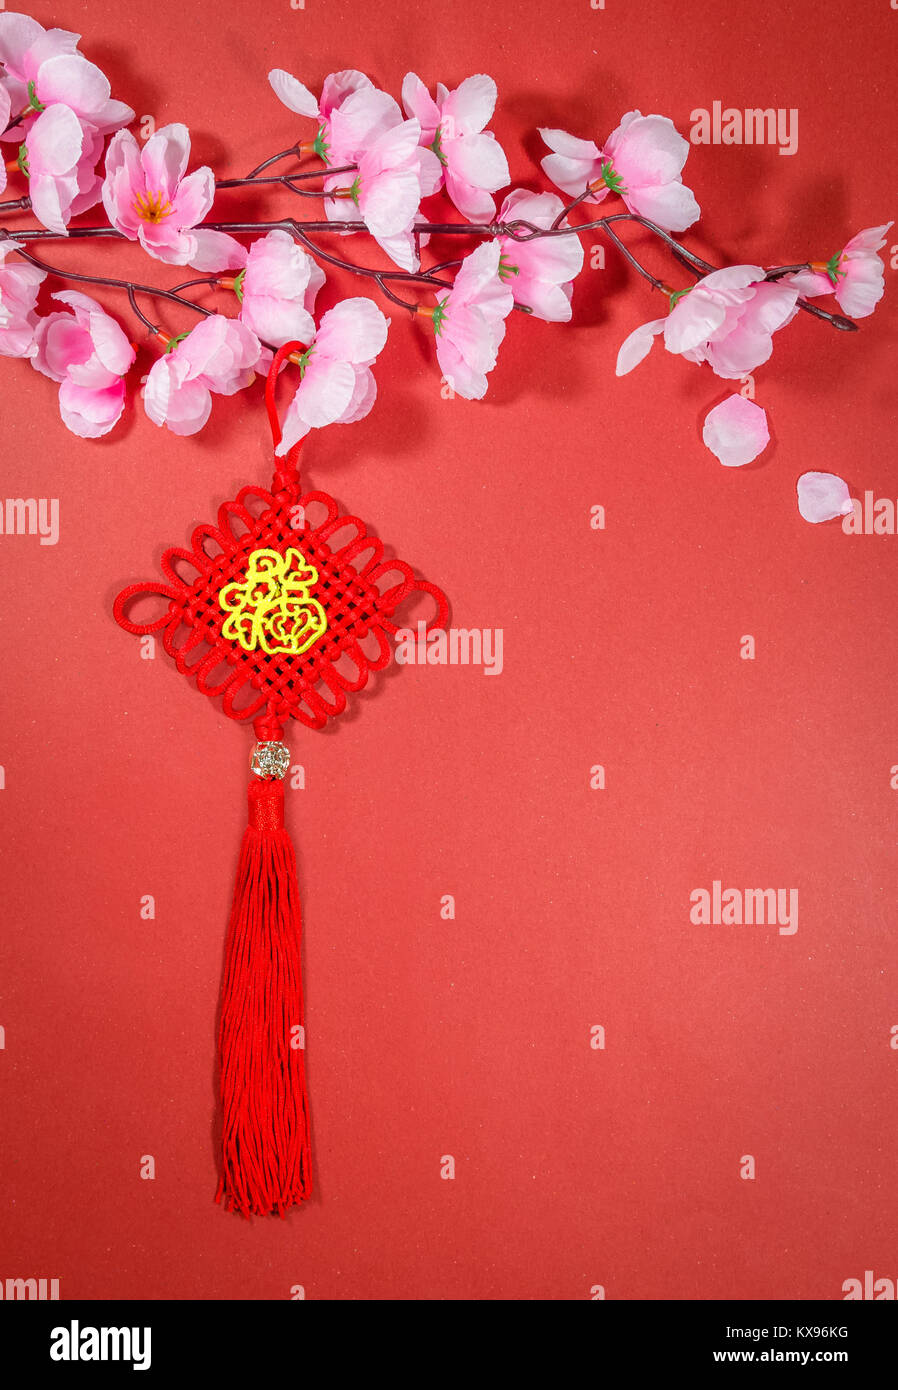 Chinese new year decorations on red background english translation chinese new year decorations on red background english translation for foreign text means blessing m4hsunfo